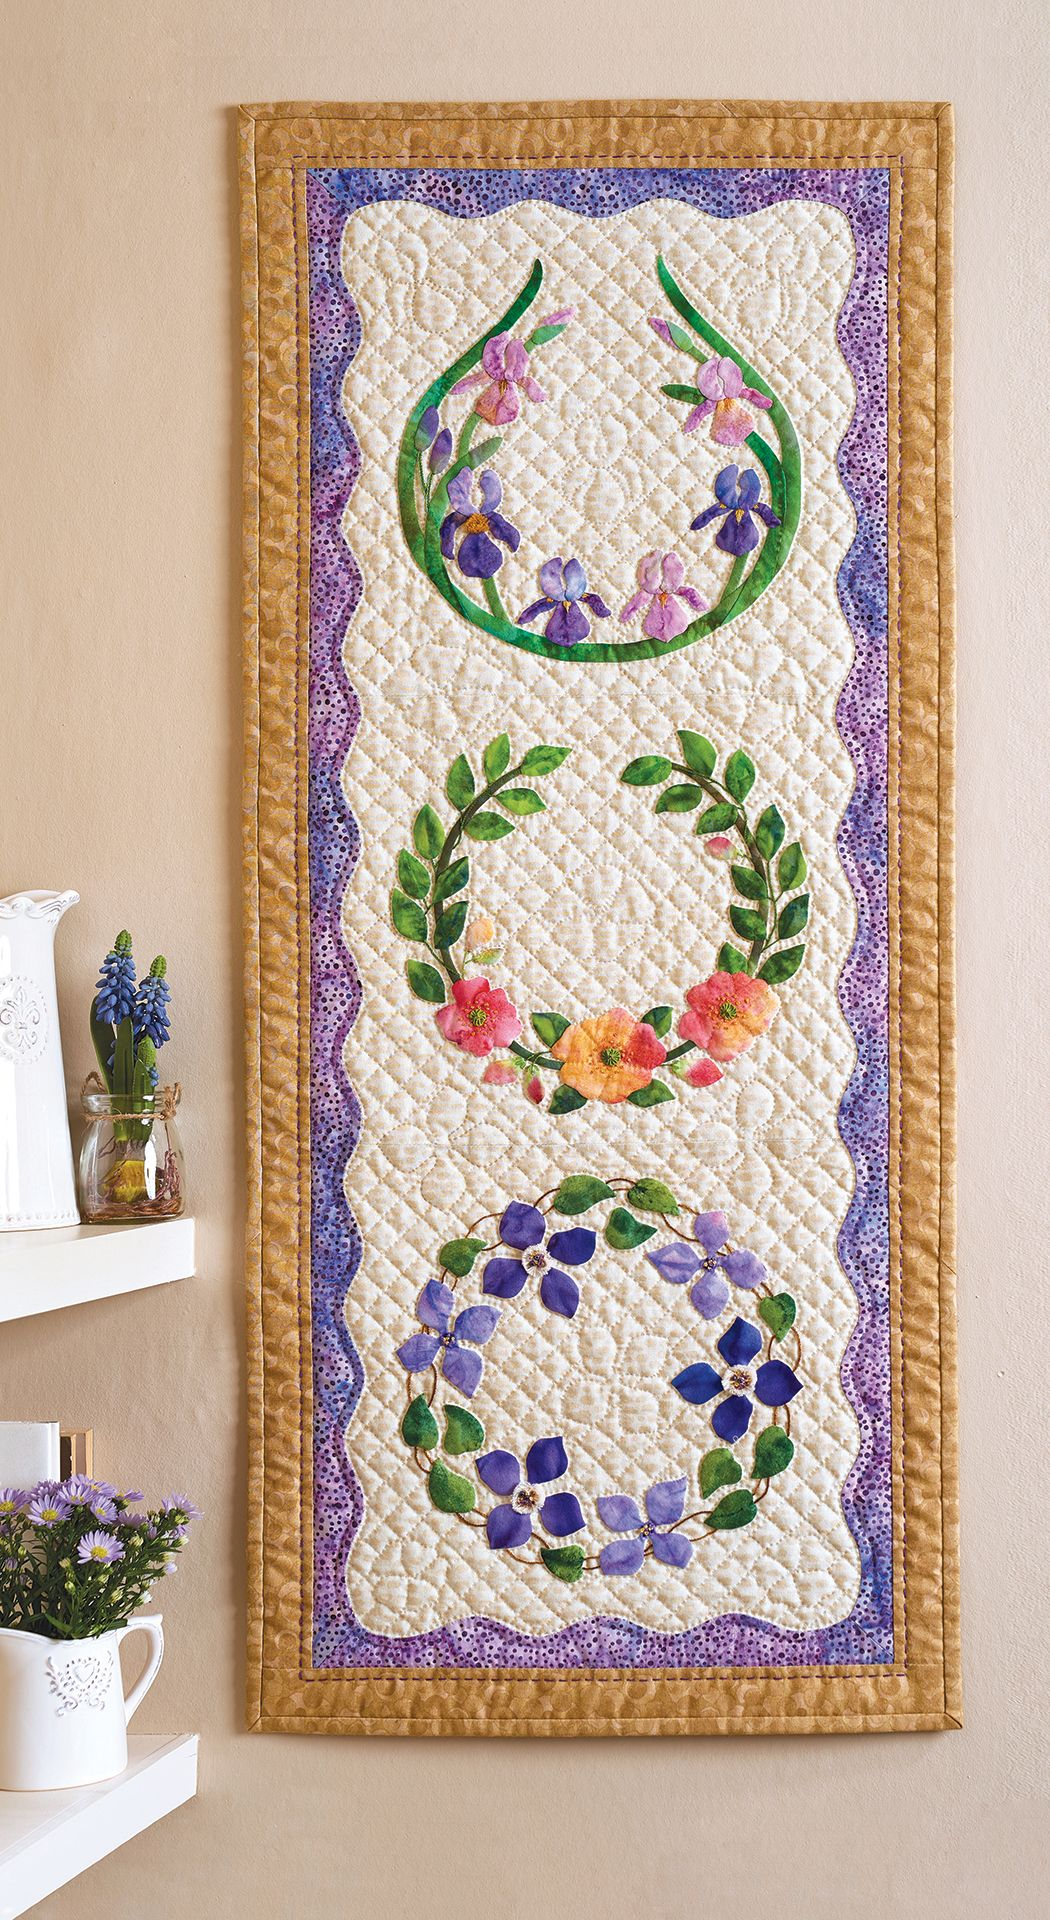 Download our free applique templates to sew Shirley Bloomfield's